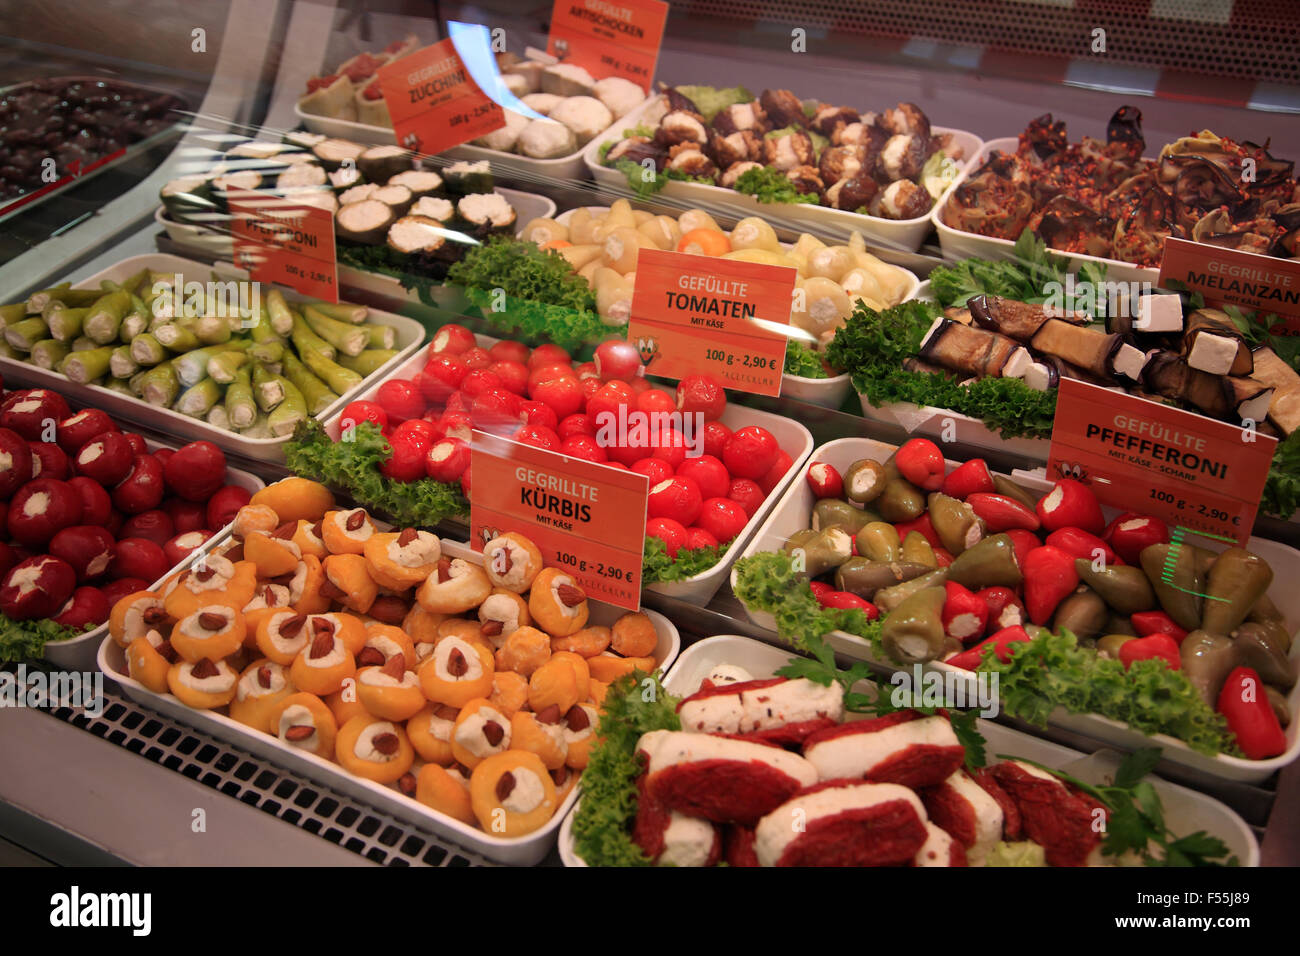 Various food products on sale at Naschmarkt  stall,  Vienna, Austria, Europe - Stock Image